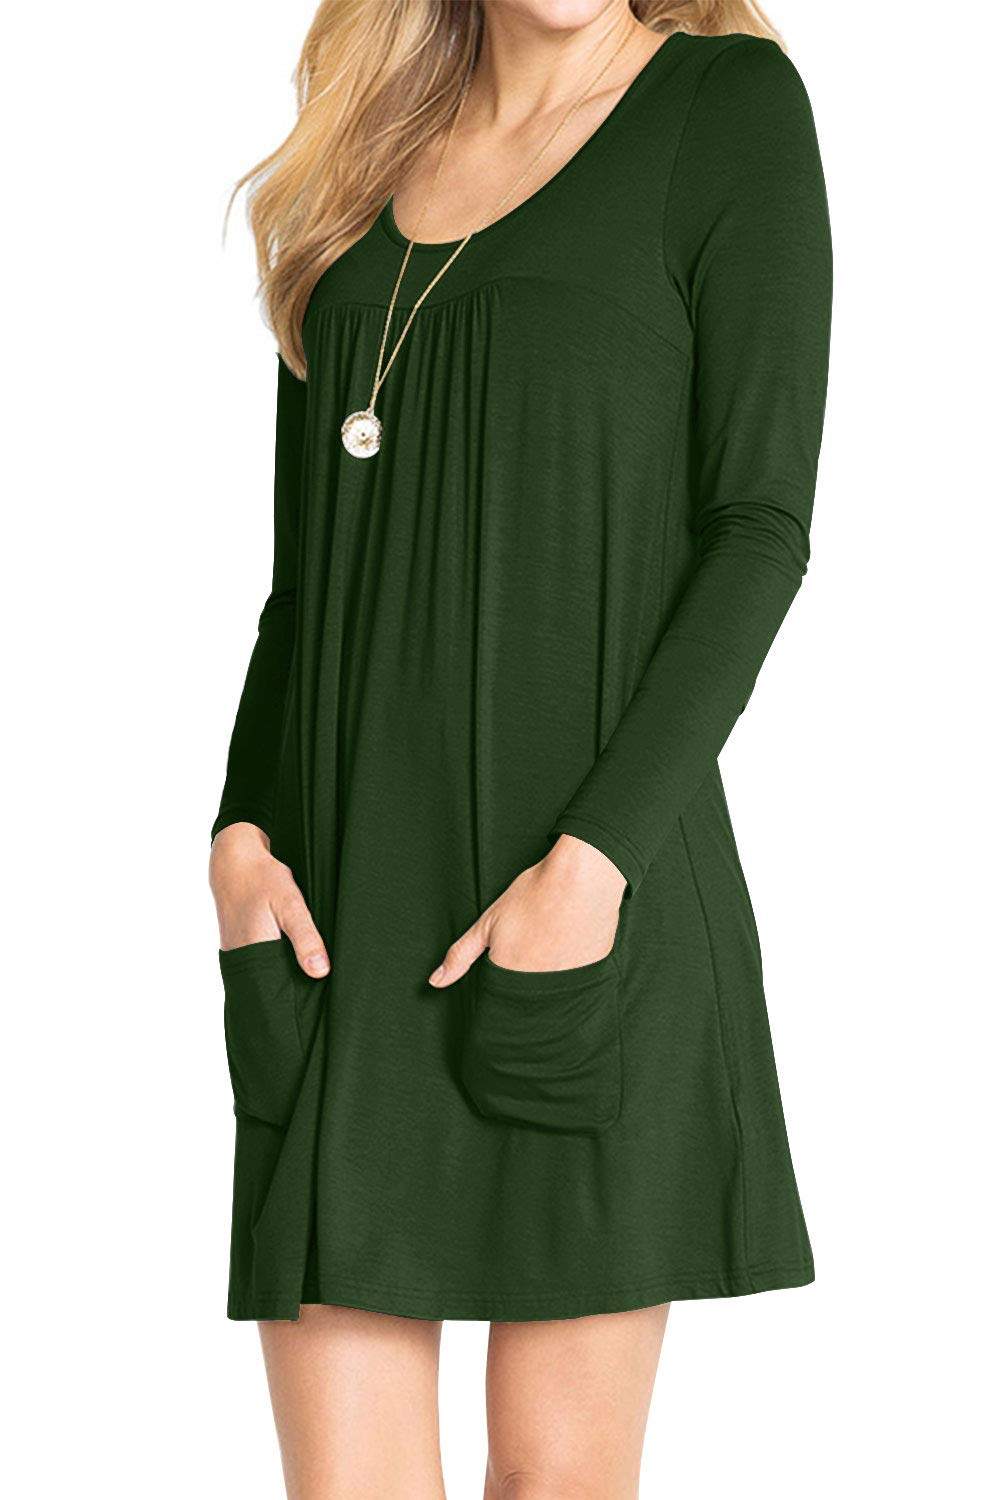 AMCLOS Womens Dress Plus Size Swing Simple Ruffle with Pockets Loose Casual Plain Round Neck Dresses Long Sleeve (Large, Green)